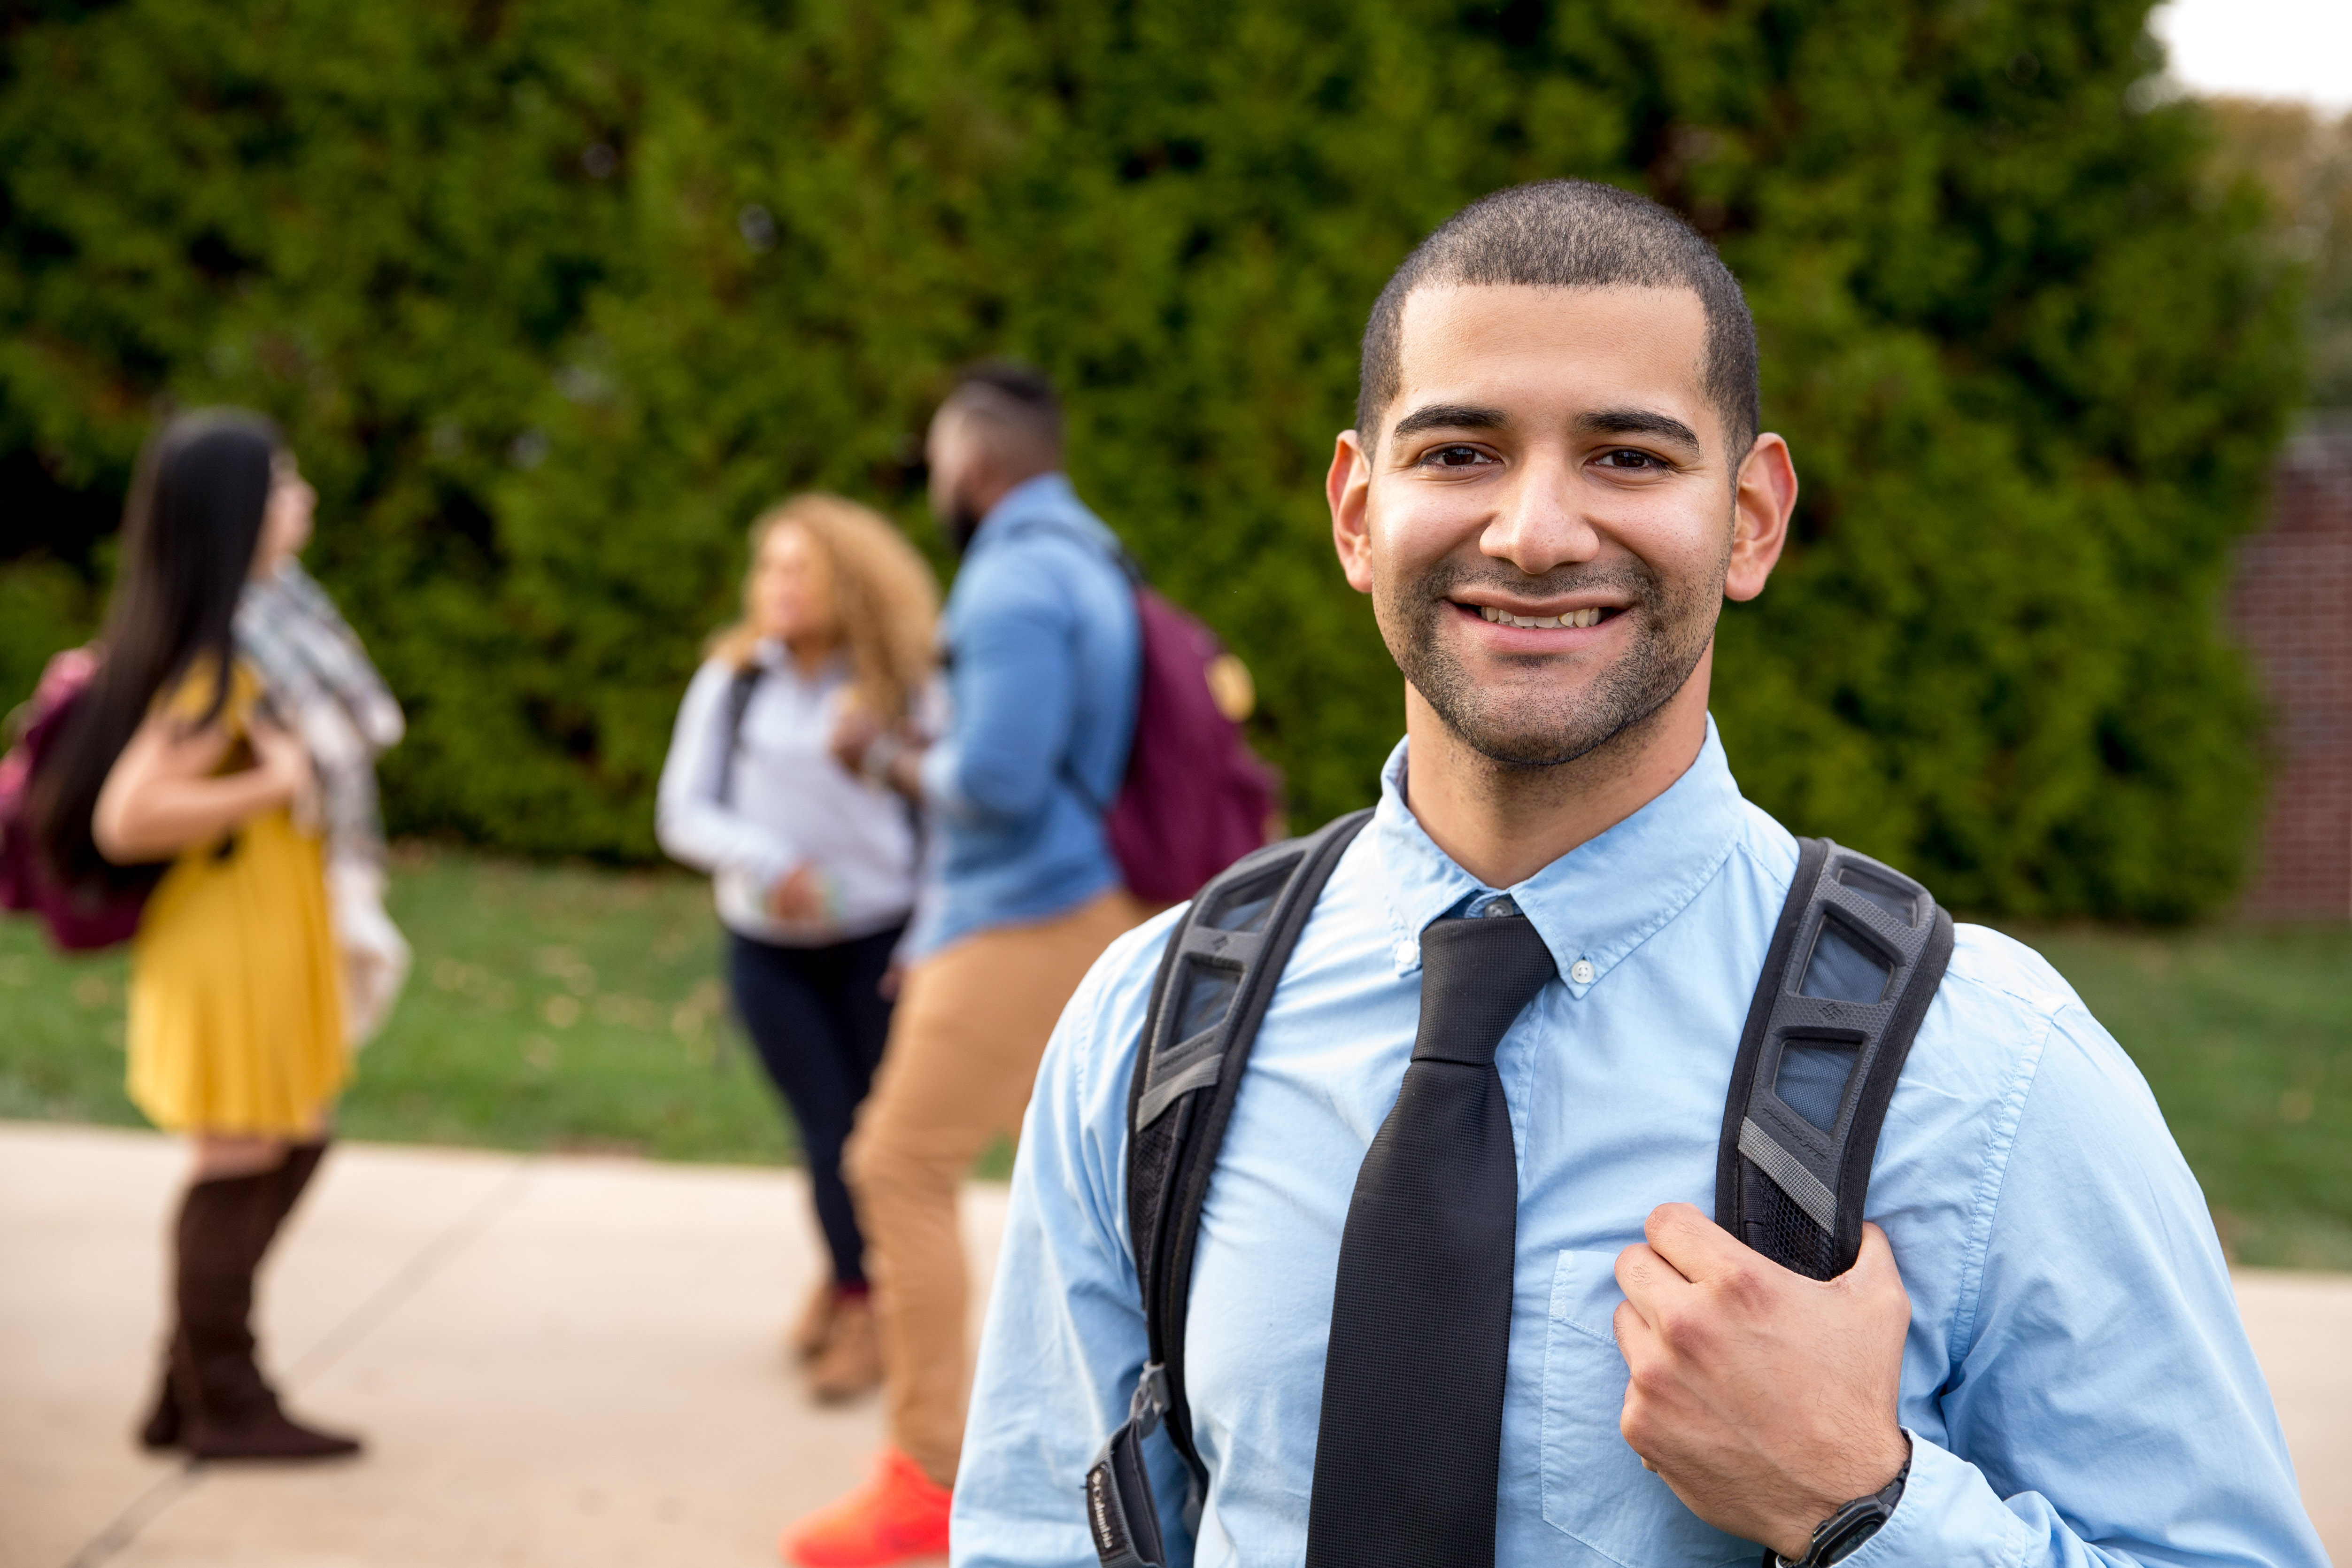 Latino male student smiling on campus with his friends in the background